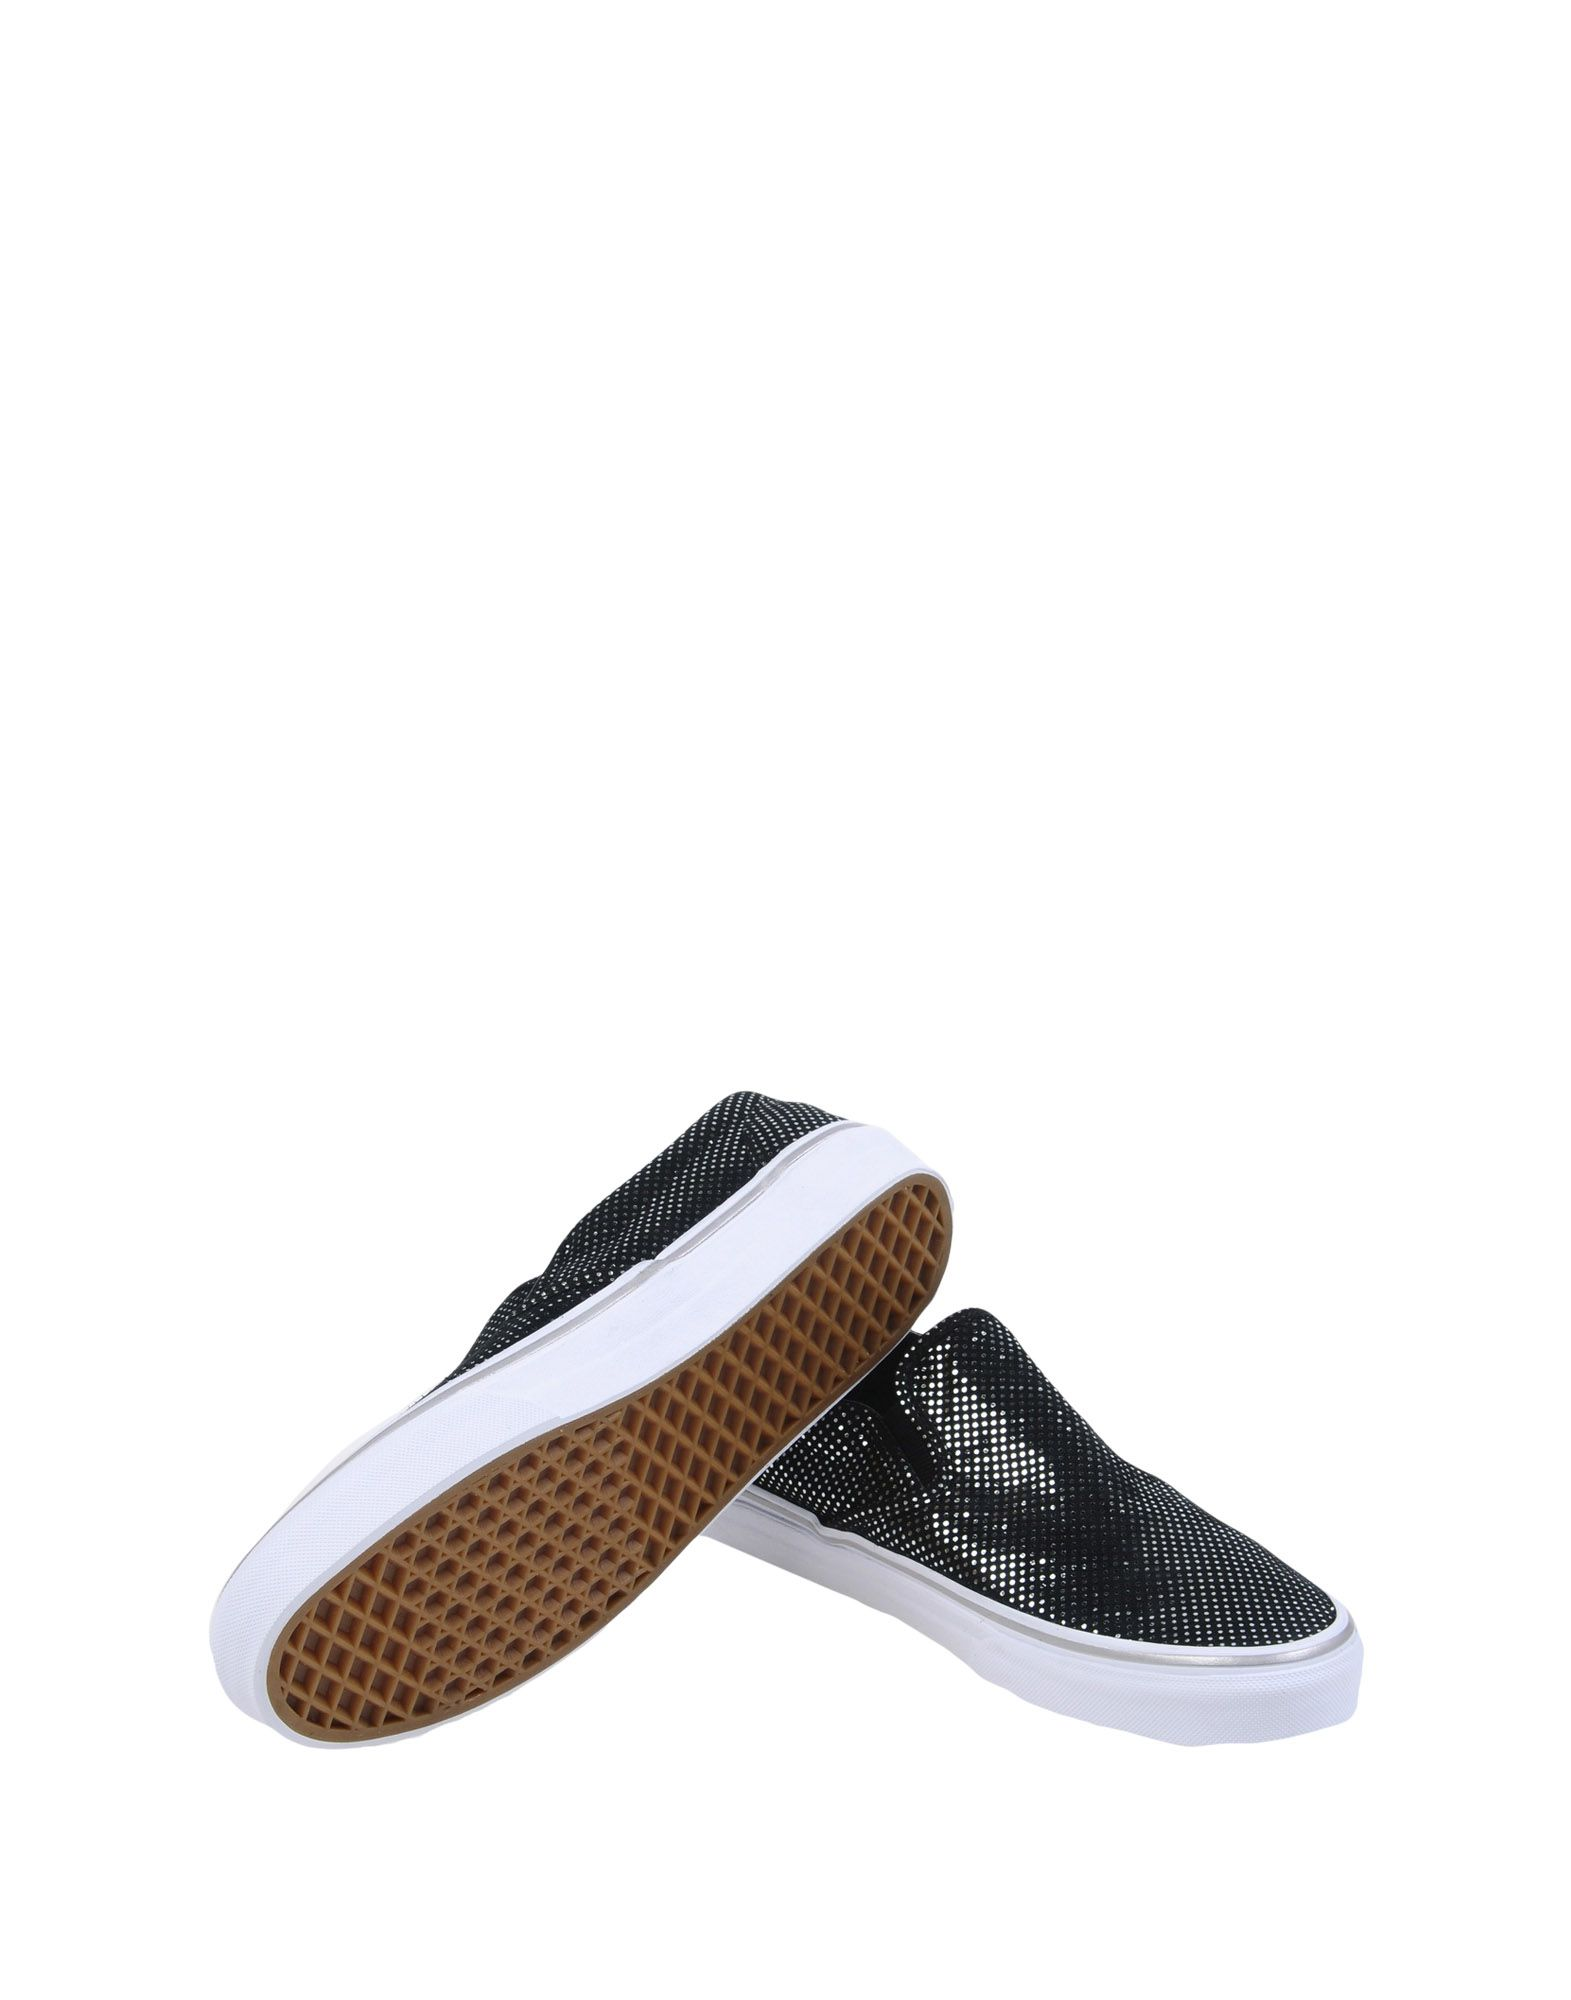 Vans Ua Classic Slip-On - Metallic Dots Vans - Sneakers - Women Vans Dots Sneakers online on  Canada - 11201317OX c07ca9